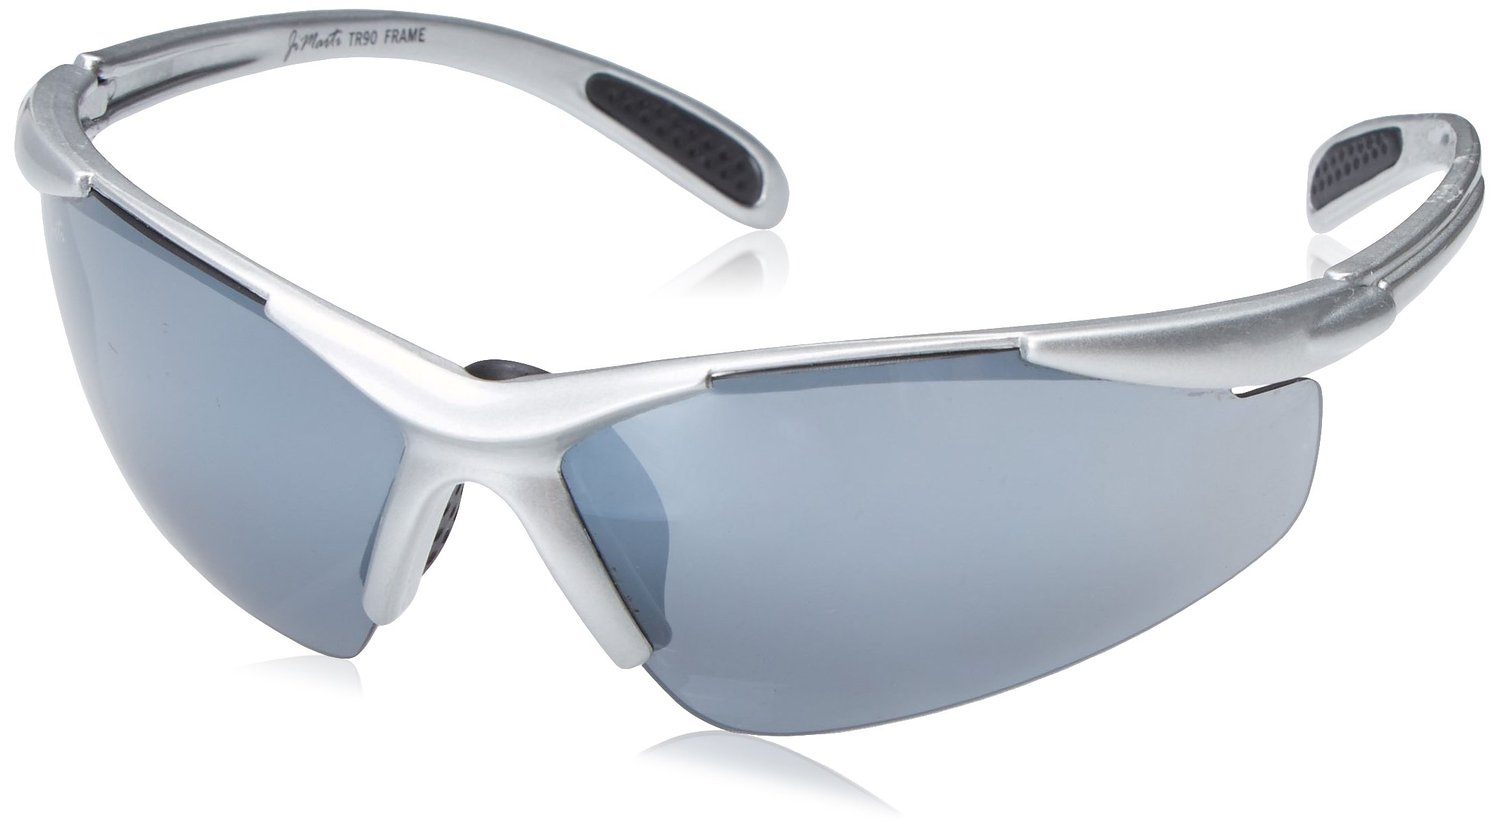 JiMarti JM01 Sunglasses for golf with unbreakable frame